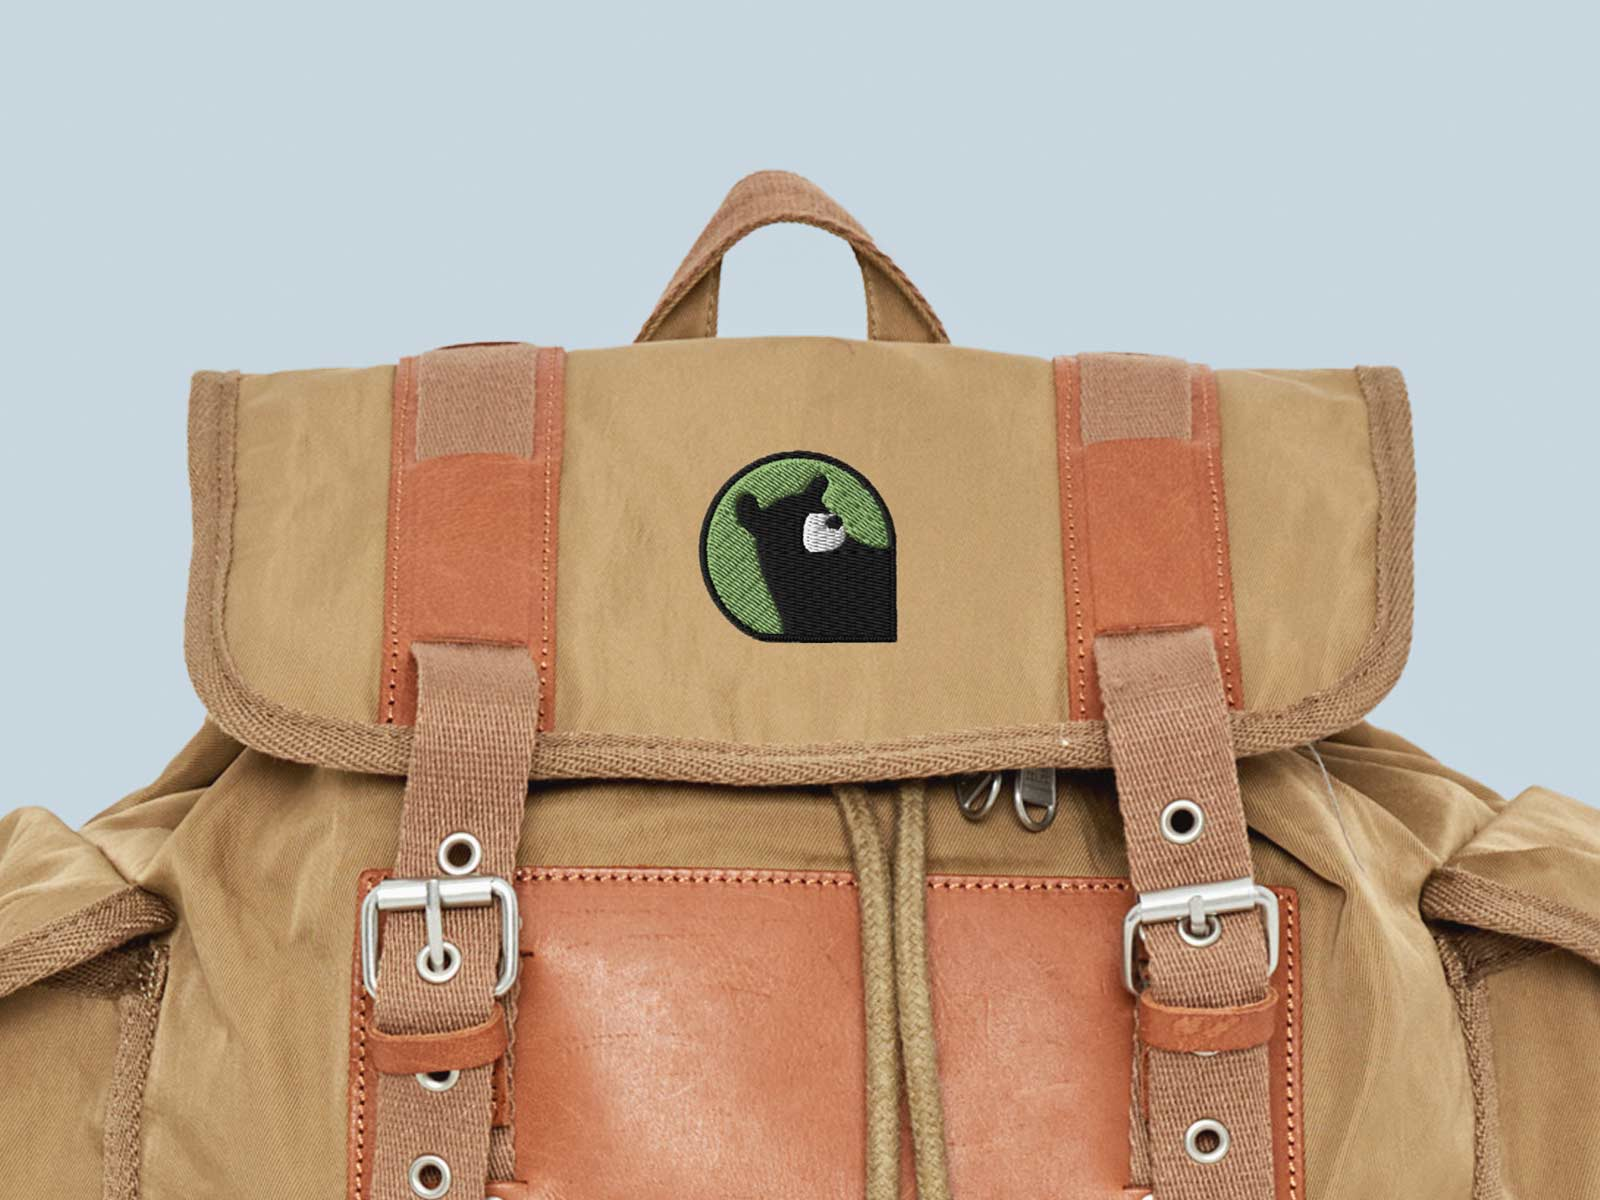 Embroidered Hey Bear Logo Design on Hiking Backpack by Lucas Bell